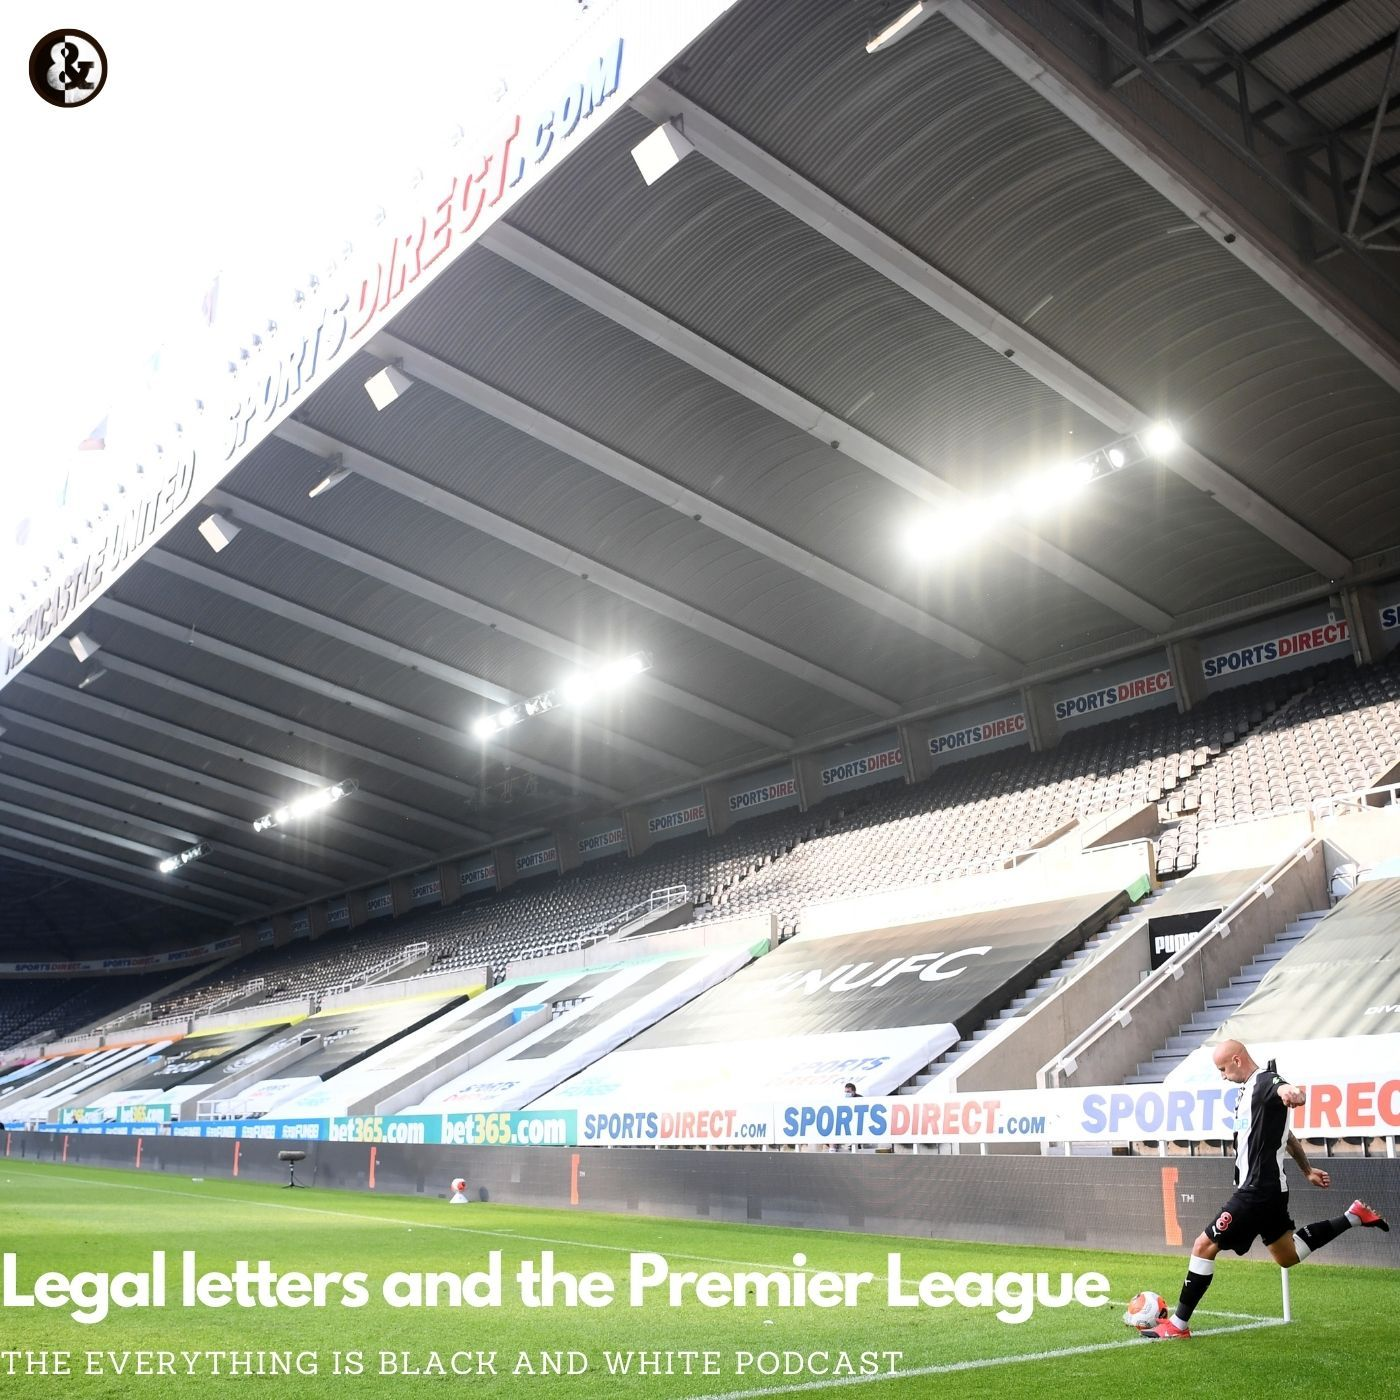 Legal letters, Reuben resignation, and Mike Ashley - just what is going on with the NUFC takeover